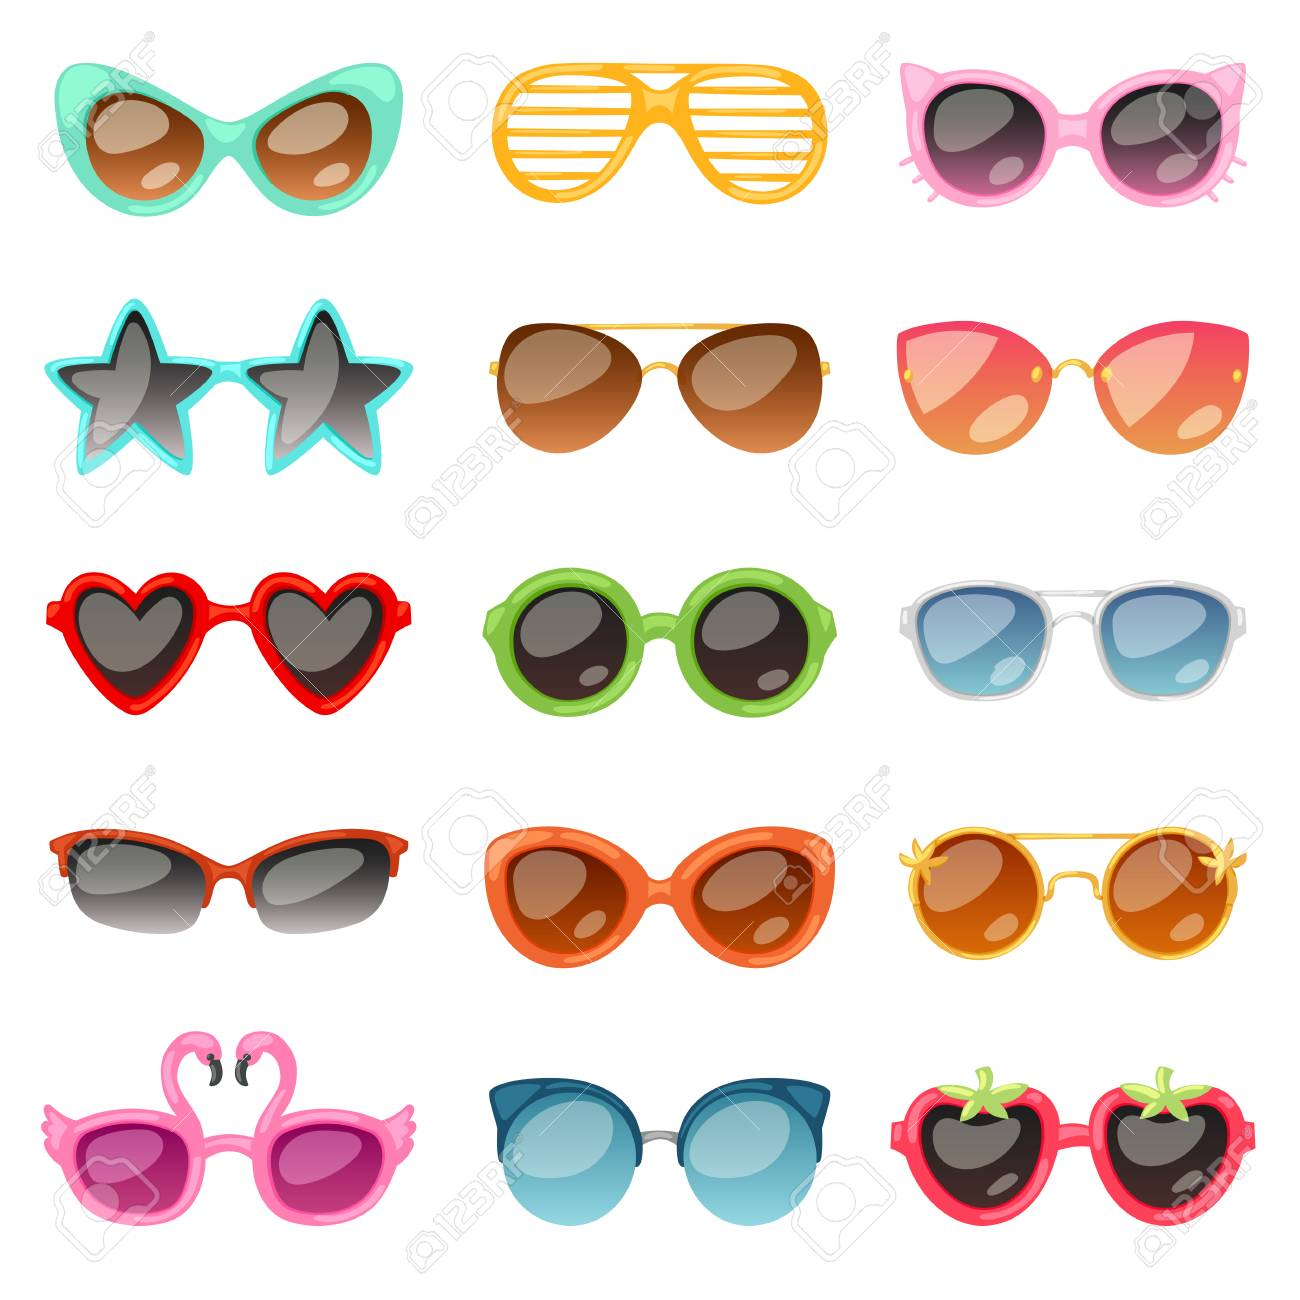 glasses vector cartoon eyeglasses or sunglasses in stylish shapes.. royalty  free cliparts, vectors, and stock illustration. image 100126109.  123rf